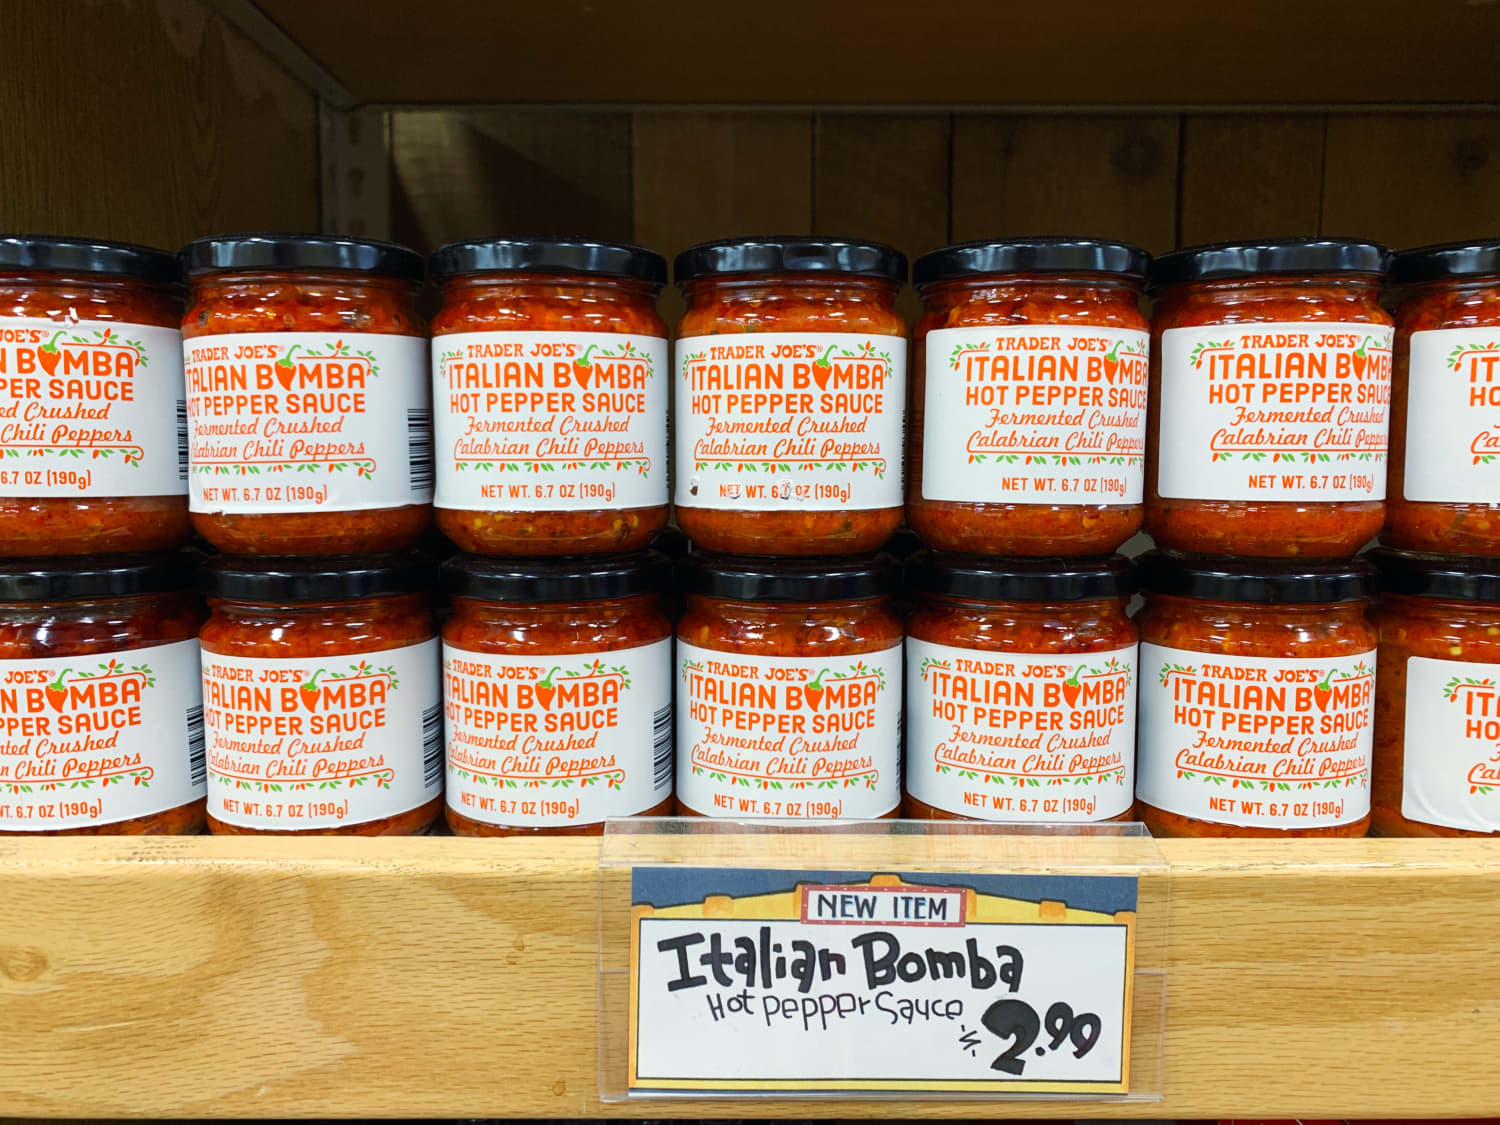 Where Has This Trader Joe's Italian Bomba Hot Pepper Sauce Been All Our Lives?